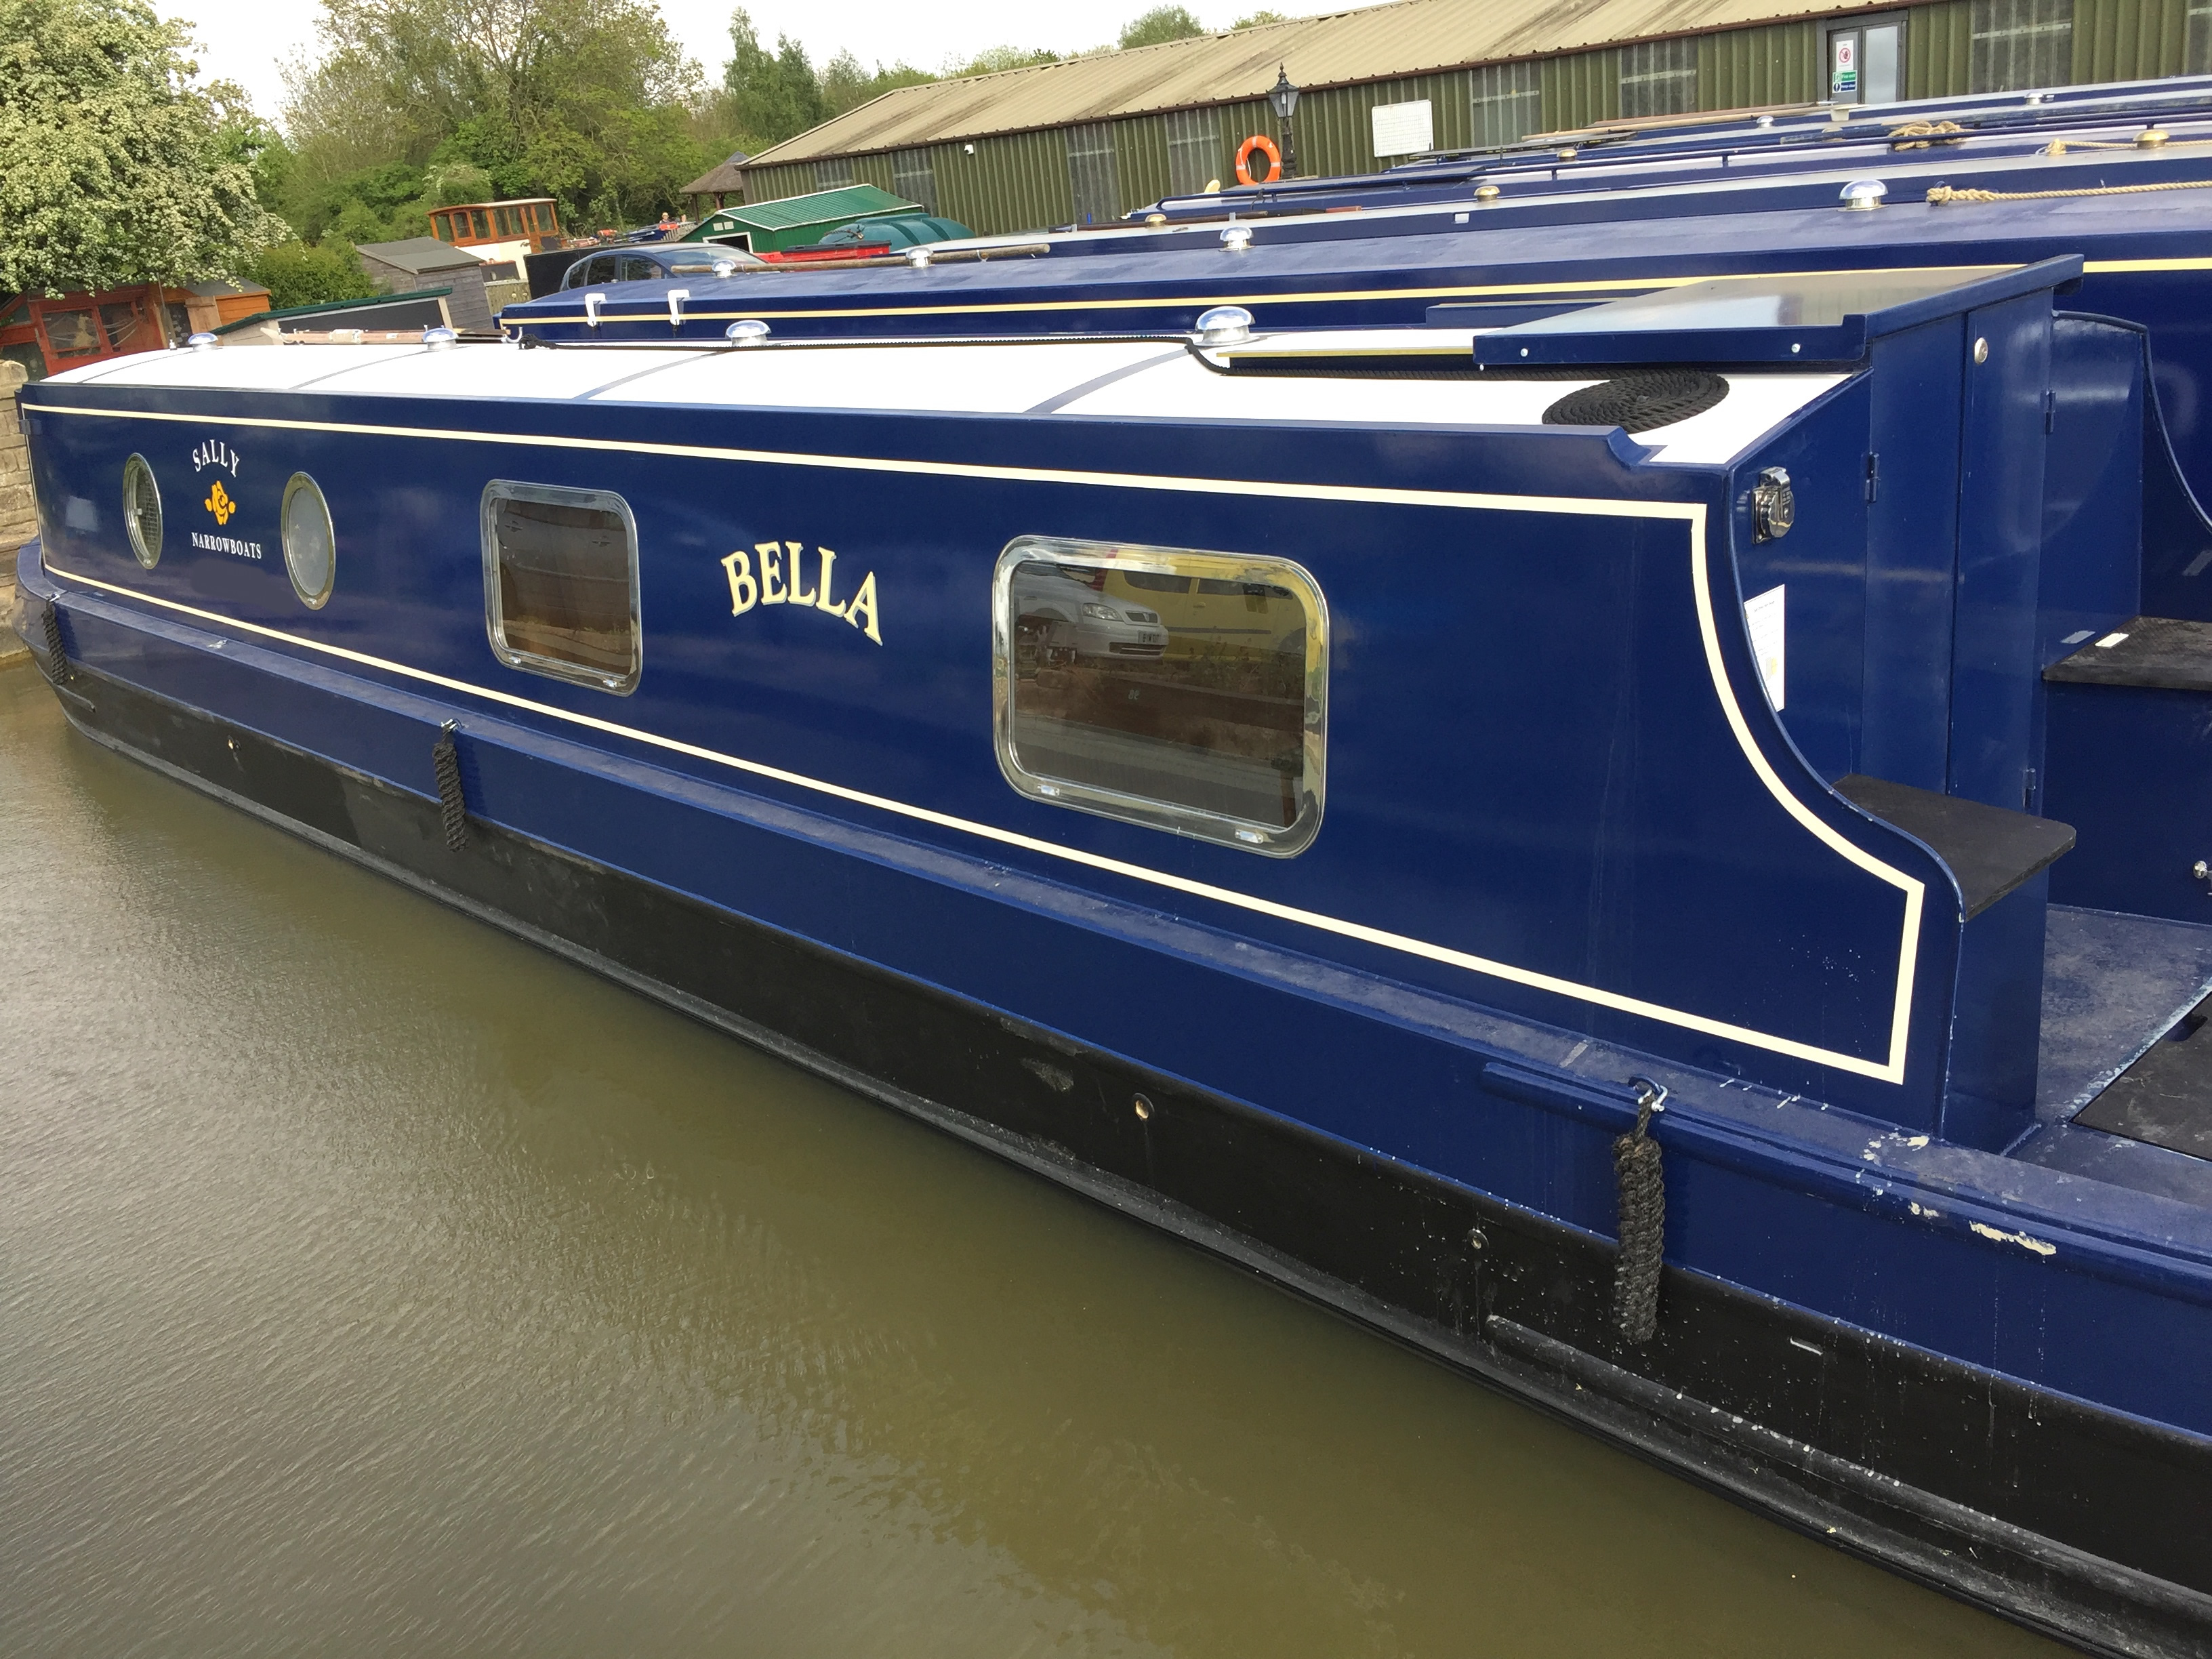 The S-Bella class canal boat